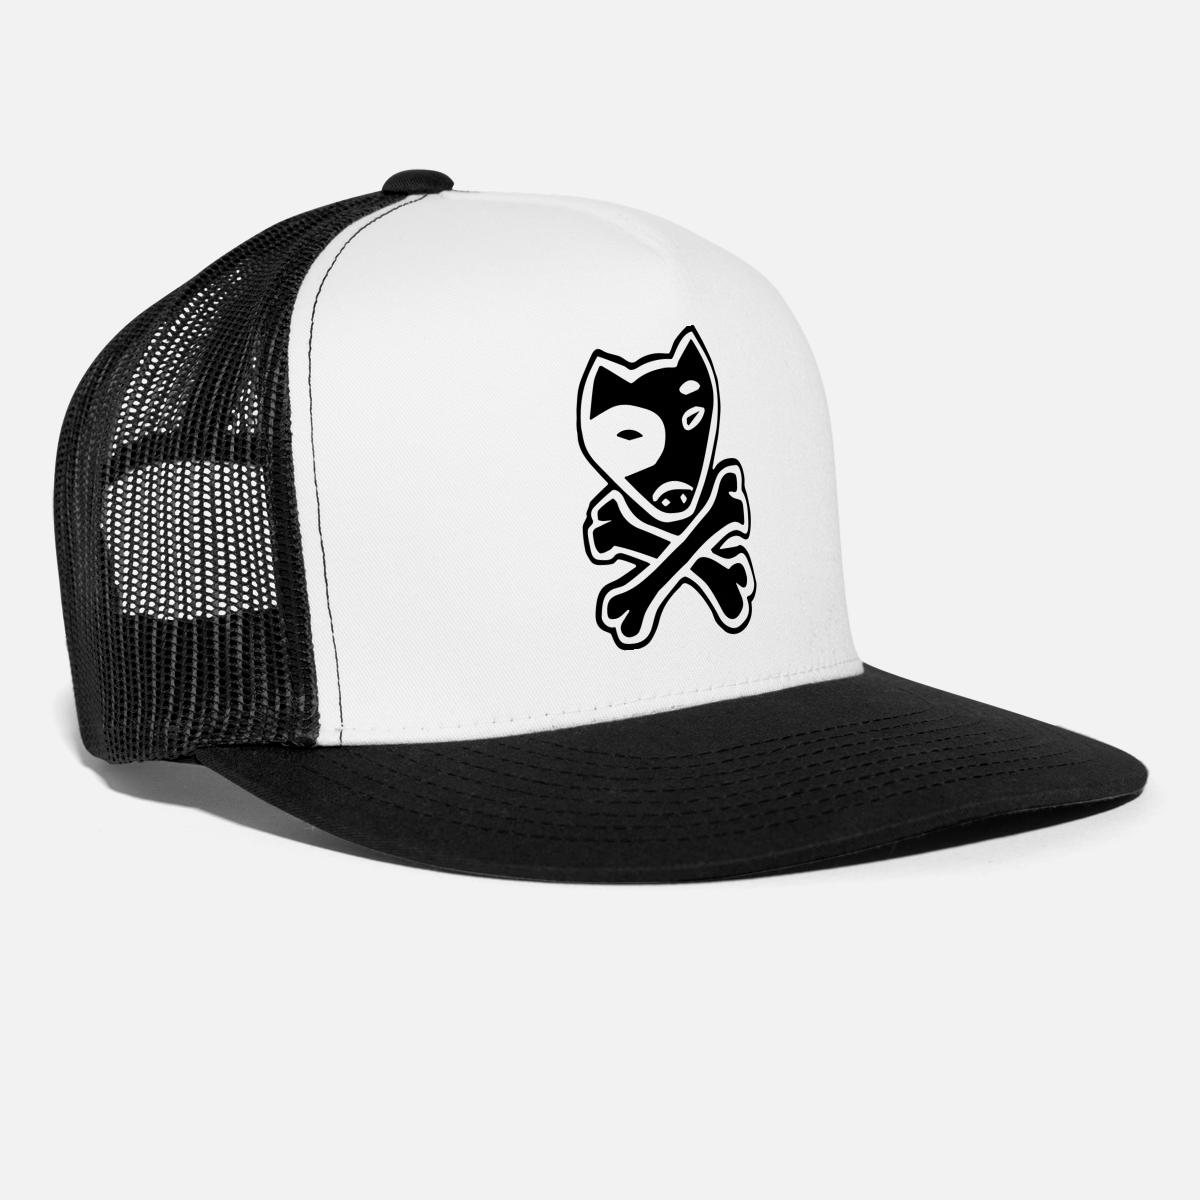 12fd342aaf3af0 Pitbull Dog Pirate Flag with crossed Bones Trucker Cap | Spreadshirt